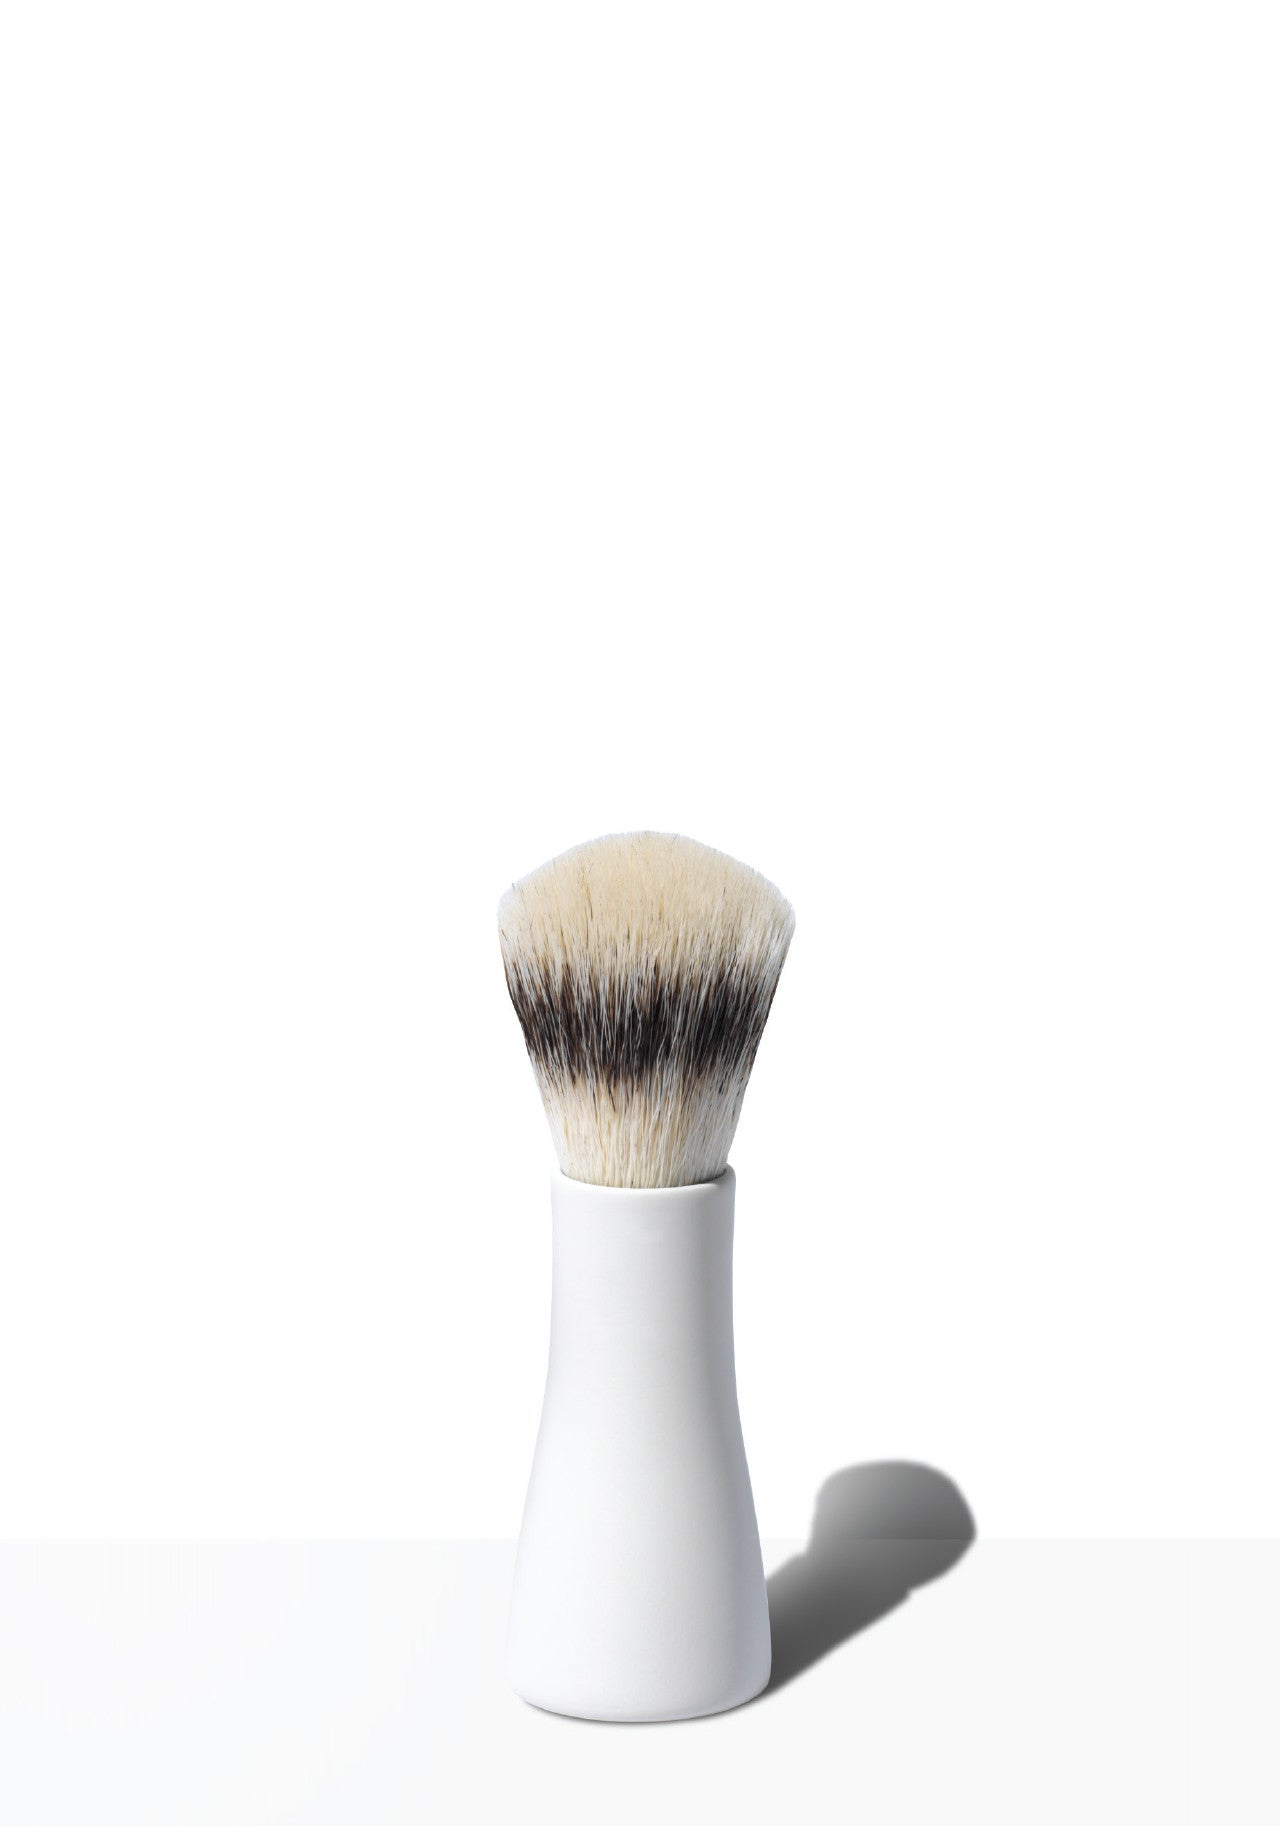 The Shave Brush // Cashmere-Soft